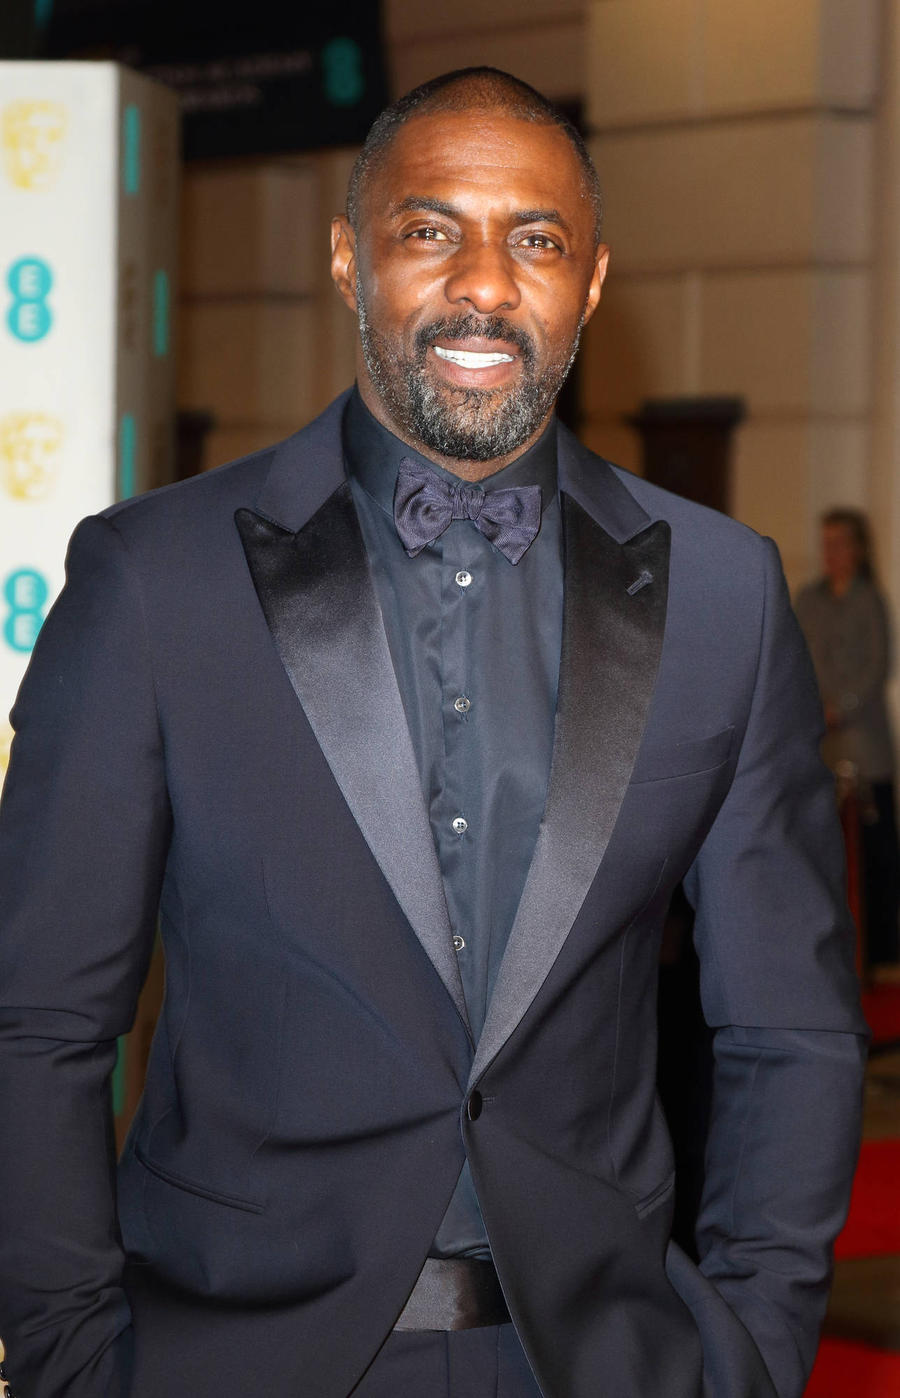 Idris Elba Ex Wife Dormowa Sherman